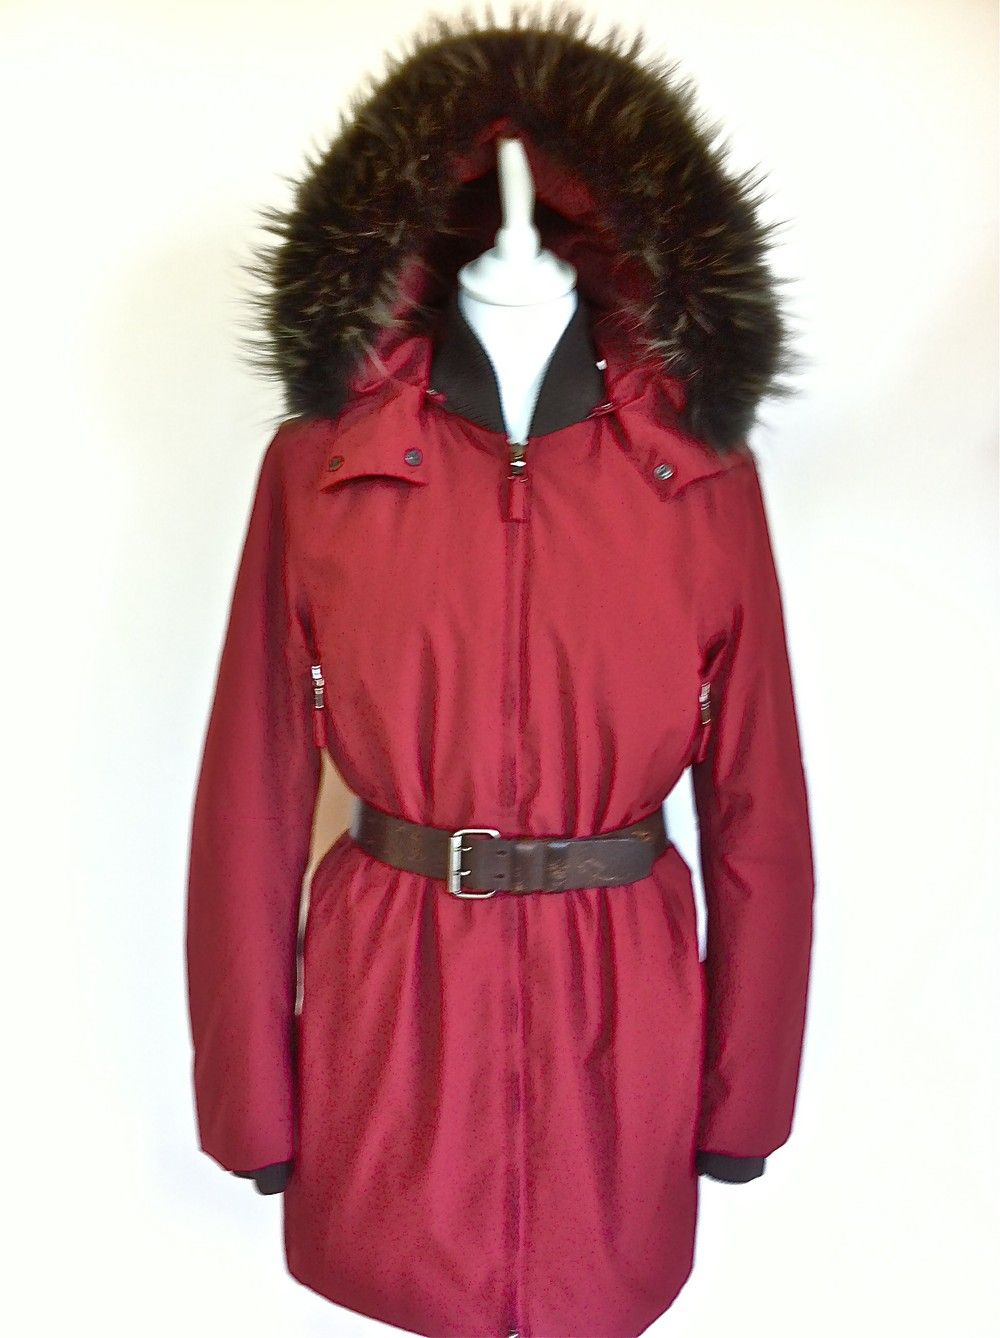 Prada Berry Anorak With Fur Trimmed Hood Size 38 via The Queen Bee. Click on the image to see more!